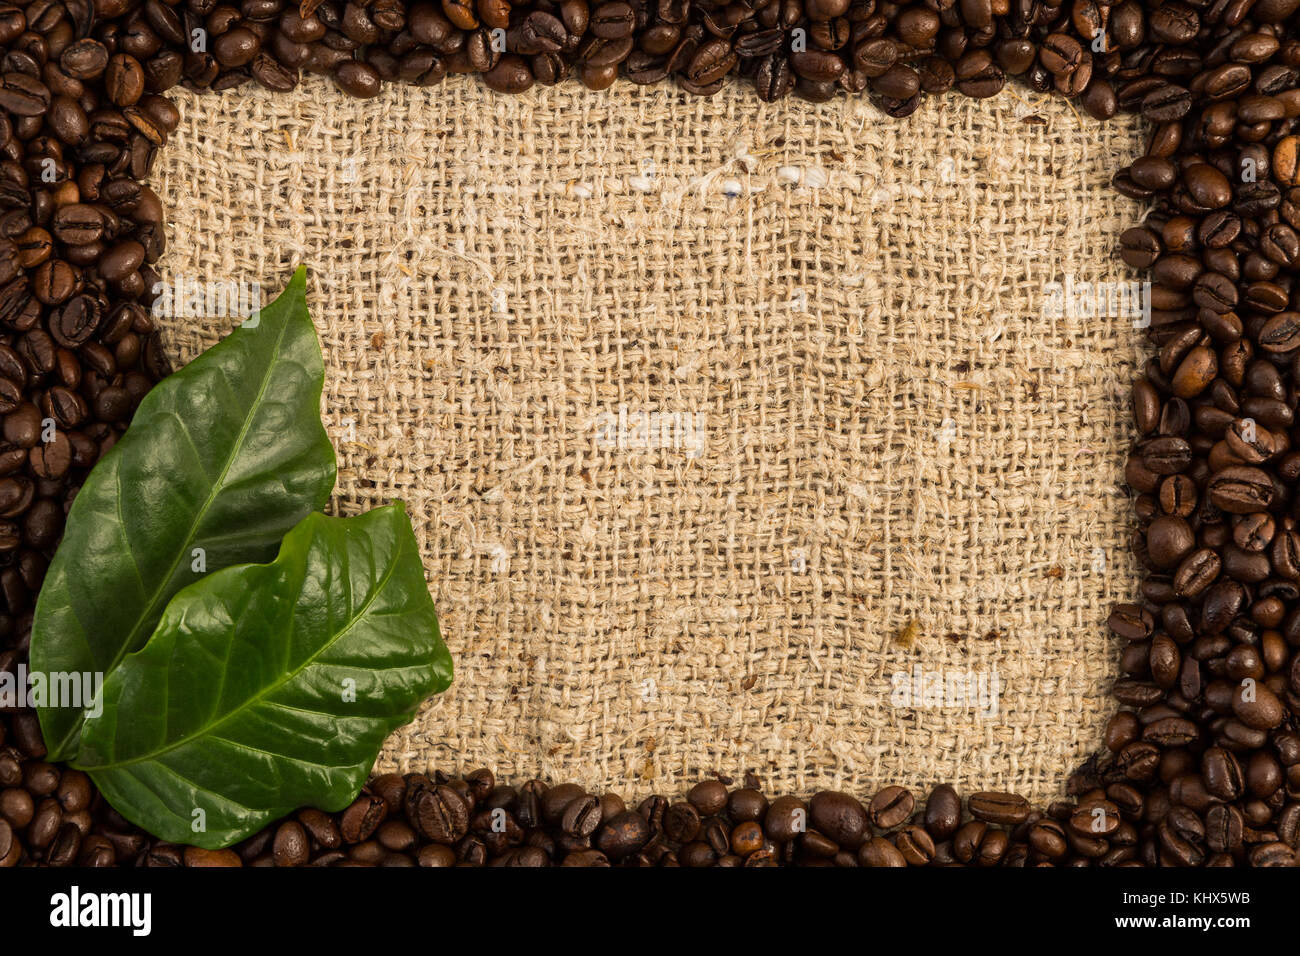 Full coffee frame on jute bag with fresh green leaves and copy space or textspace - Stock Image